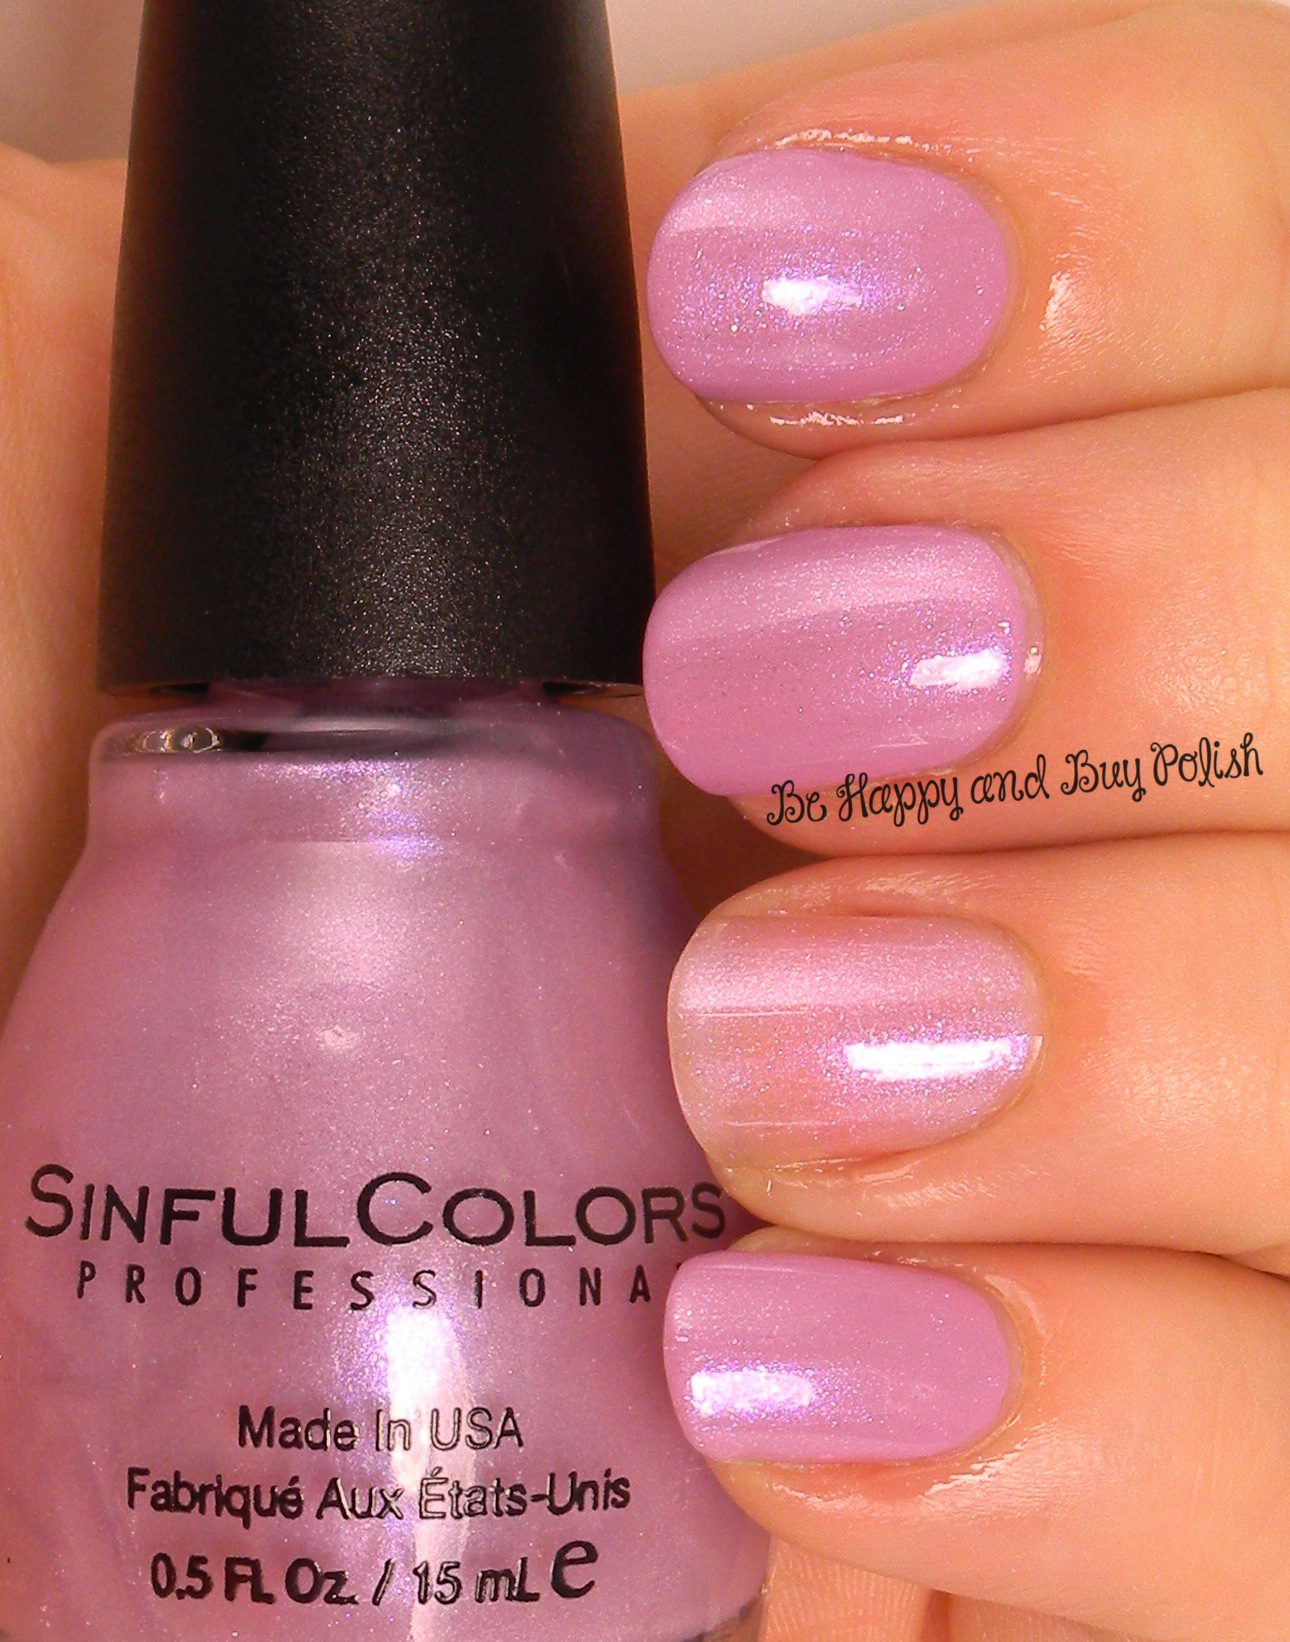 Sinful Colors Sheer trio nail polishes | Be Happy and Buy Polish